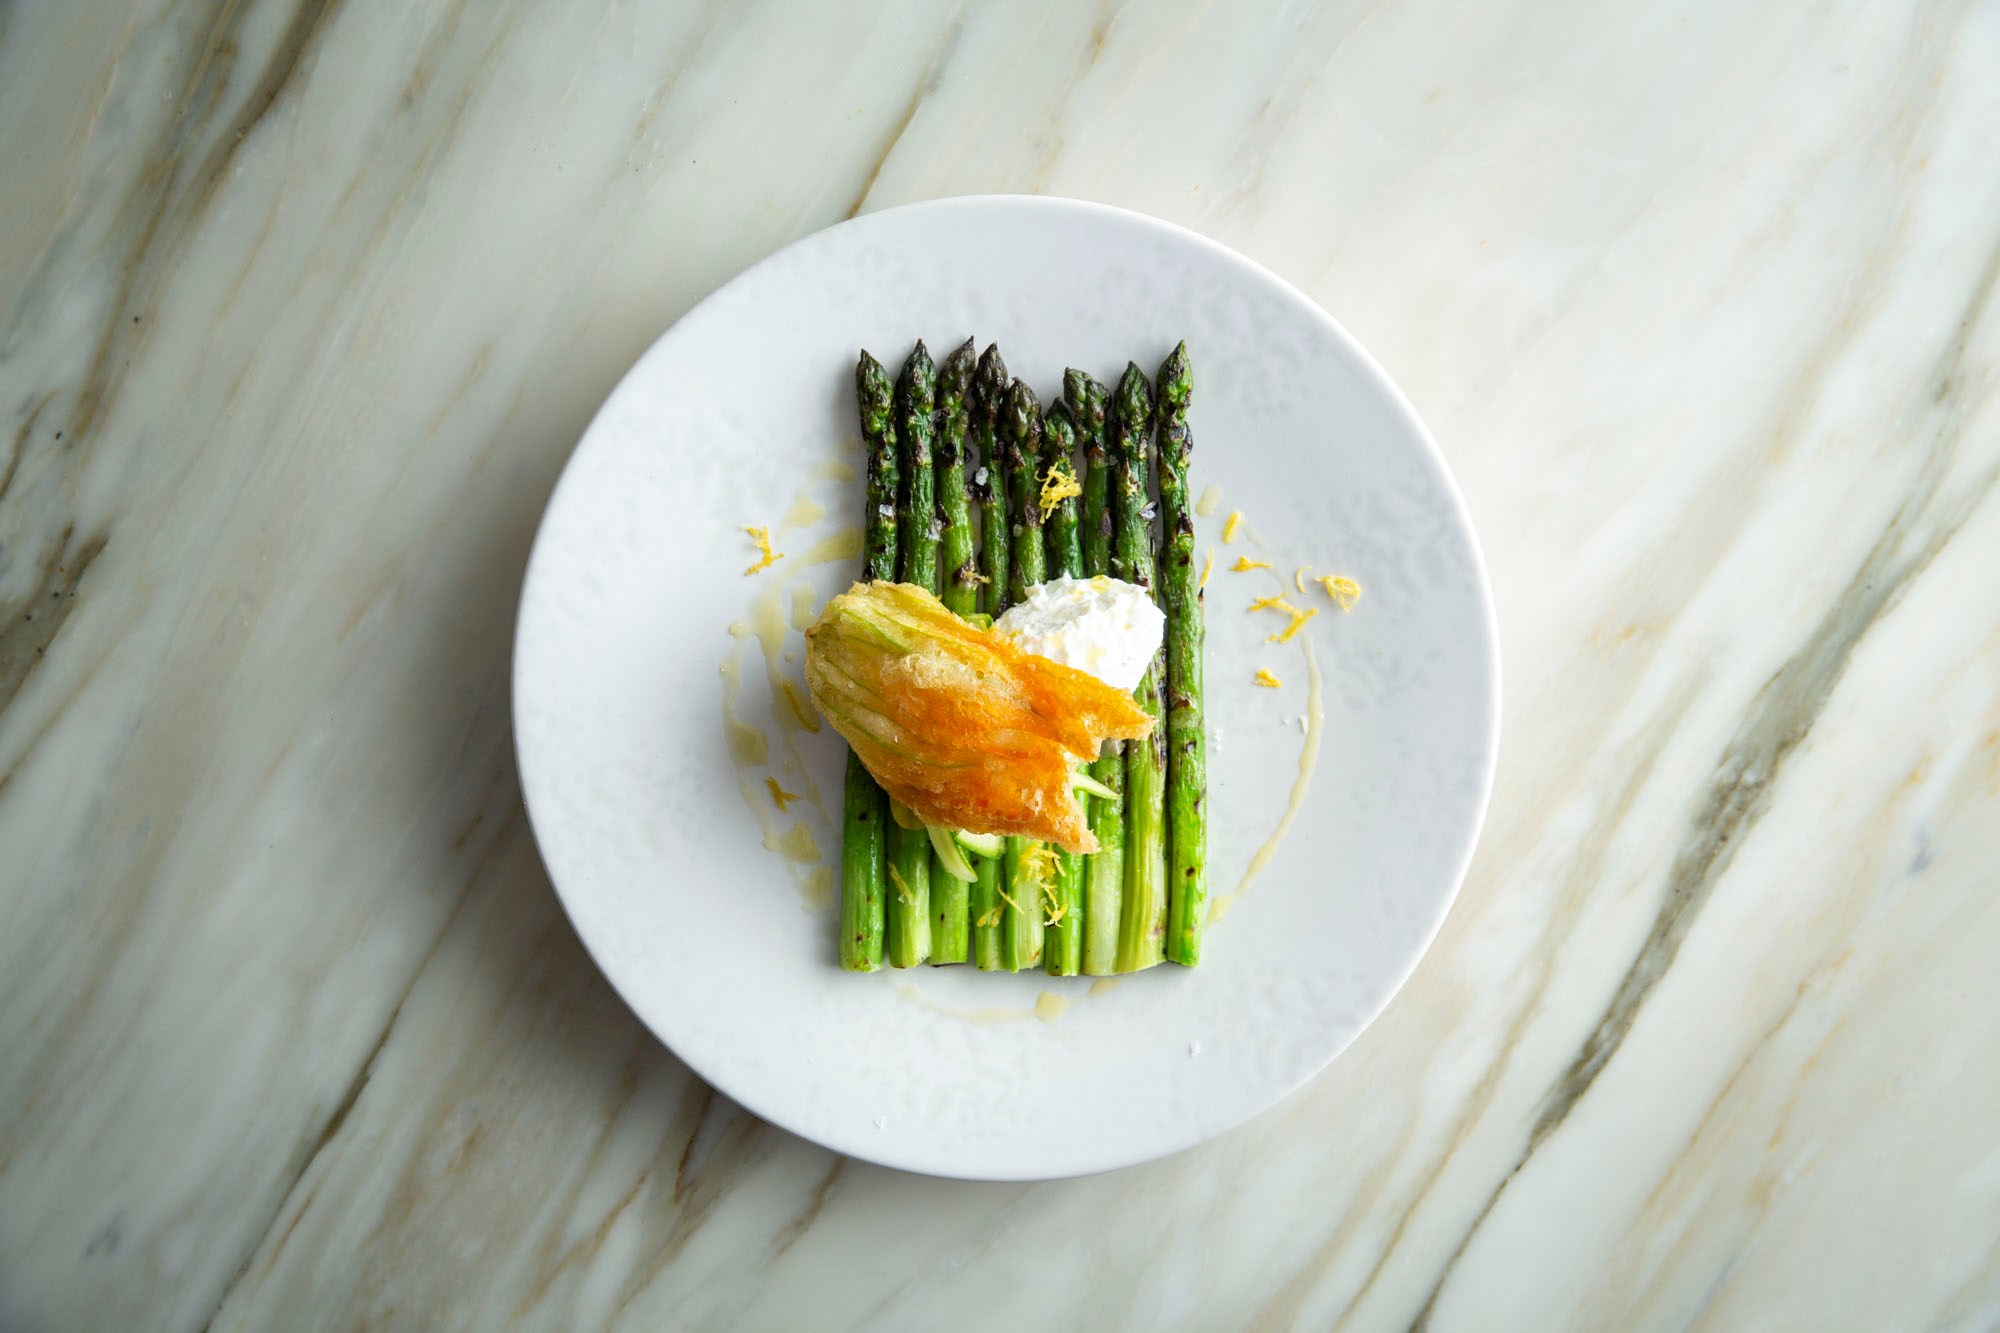 Grilled Asparagus available on the menu at Daphne's in South Kensington